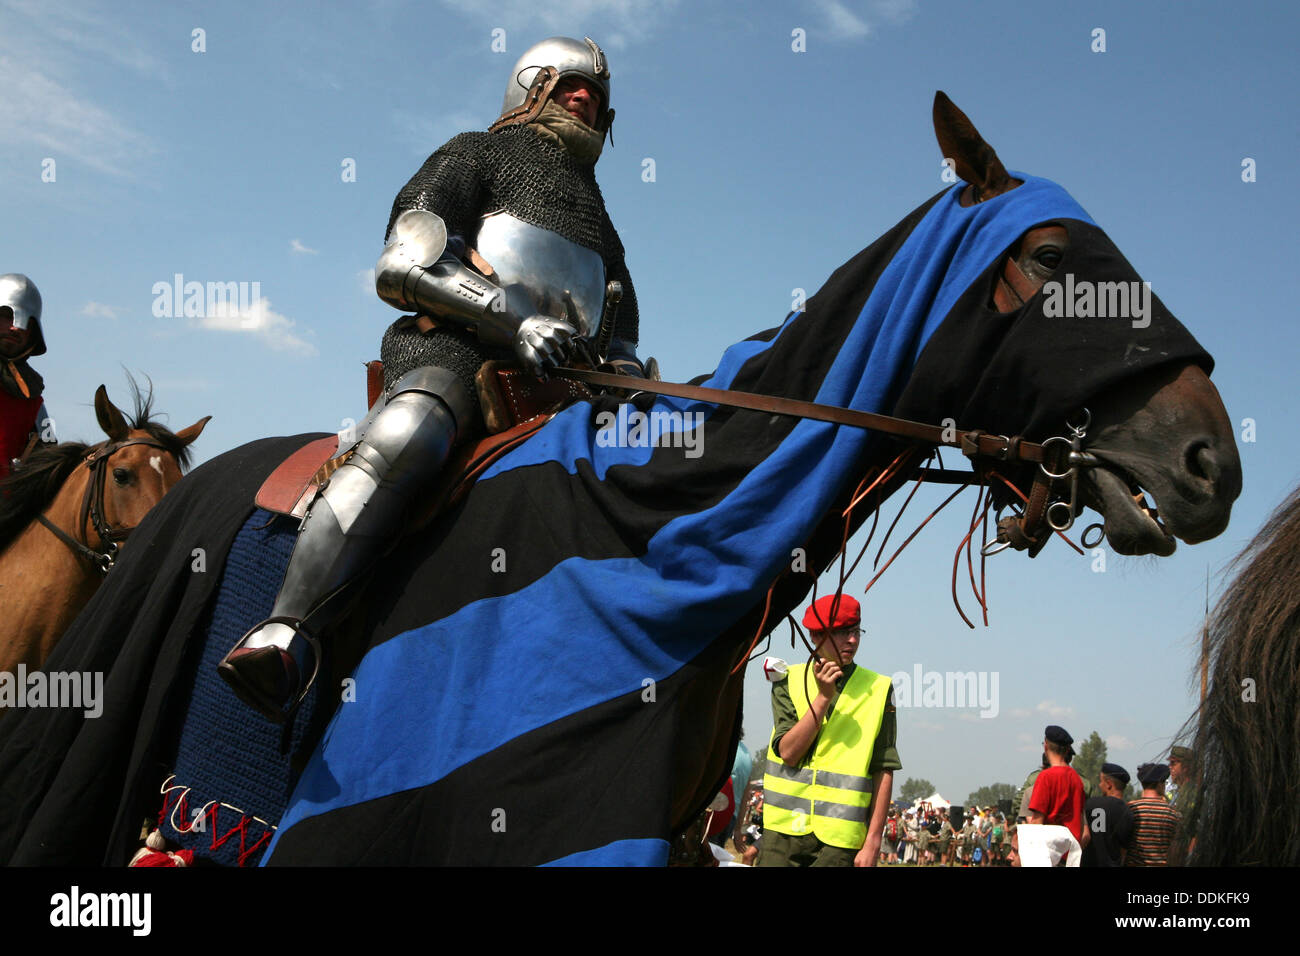 Re-enactment of the 1410 Battle of Grunwald in Northern Poland. Stock Photo